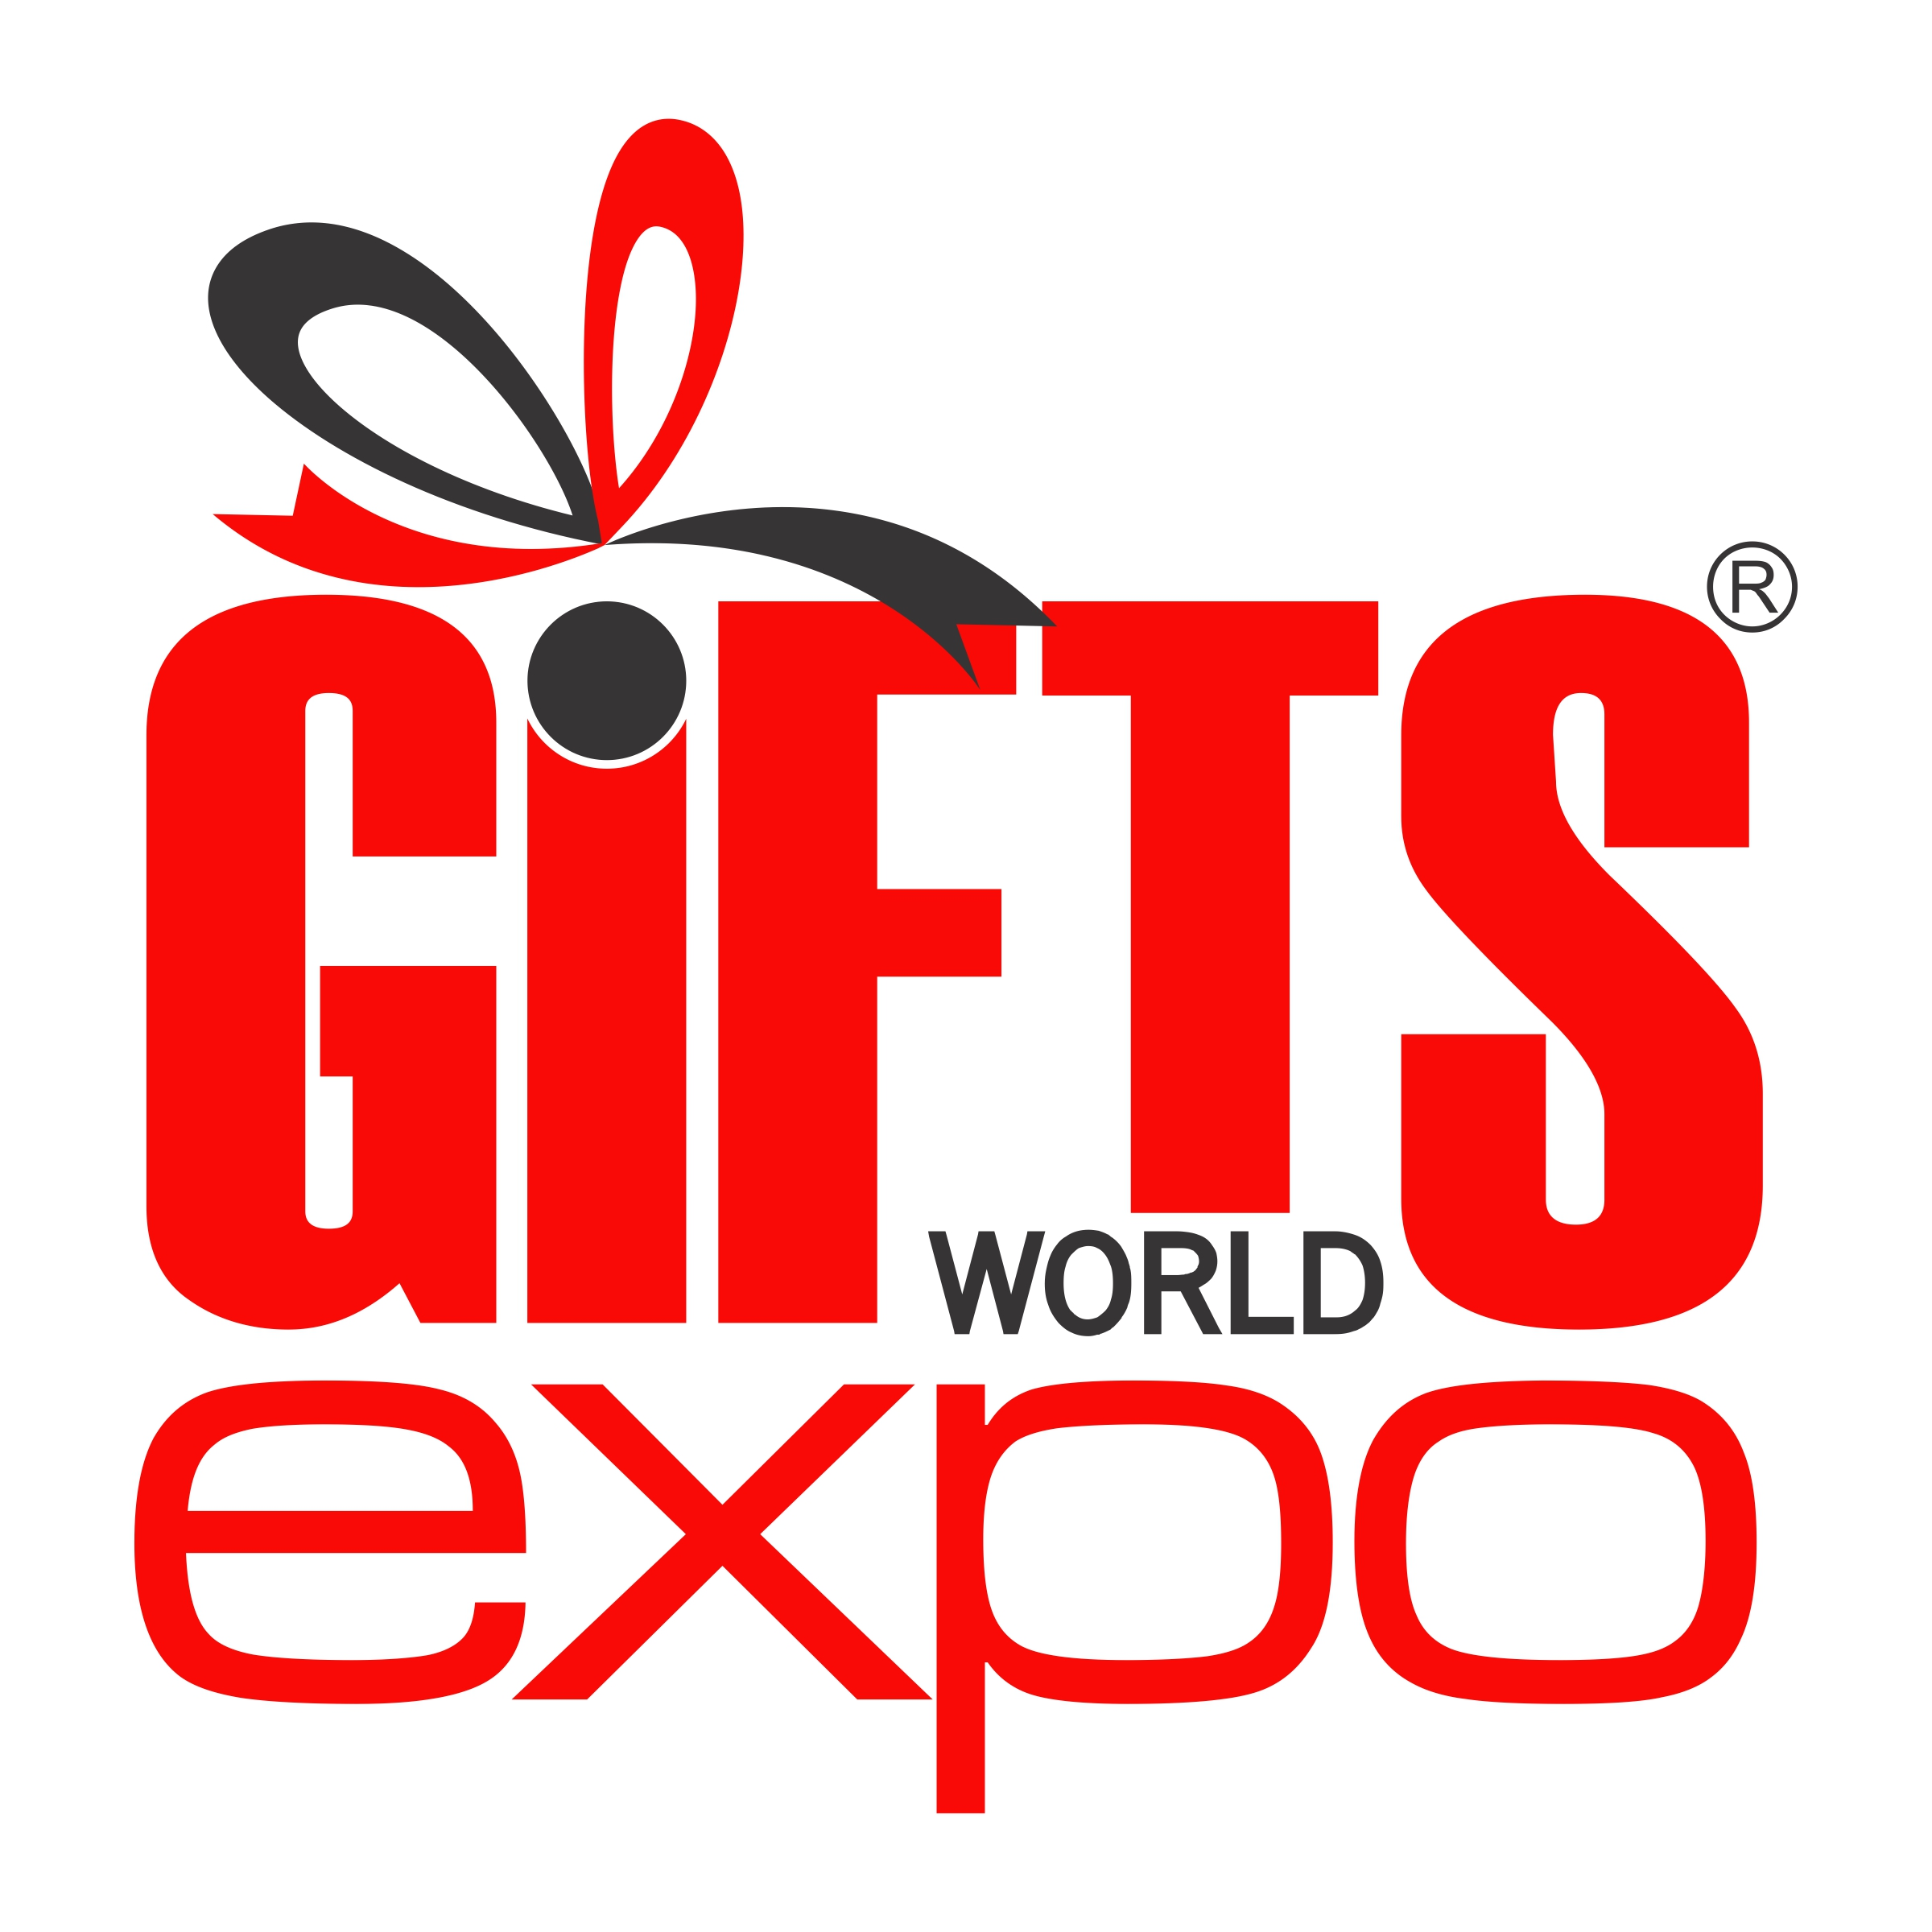 MEX Exhibitions Announces a Novel Opportunity for Gifting Industry, Launches Online Edition of Gifts World Expo